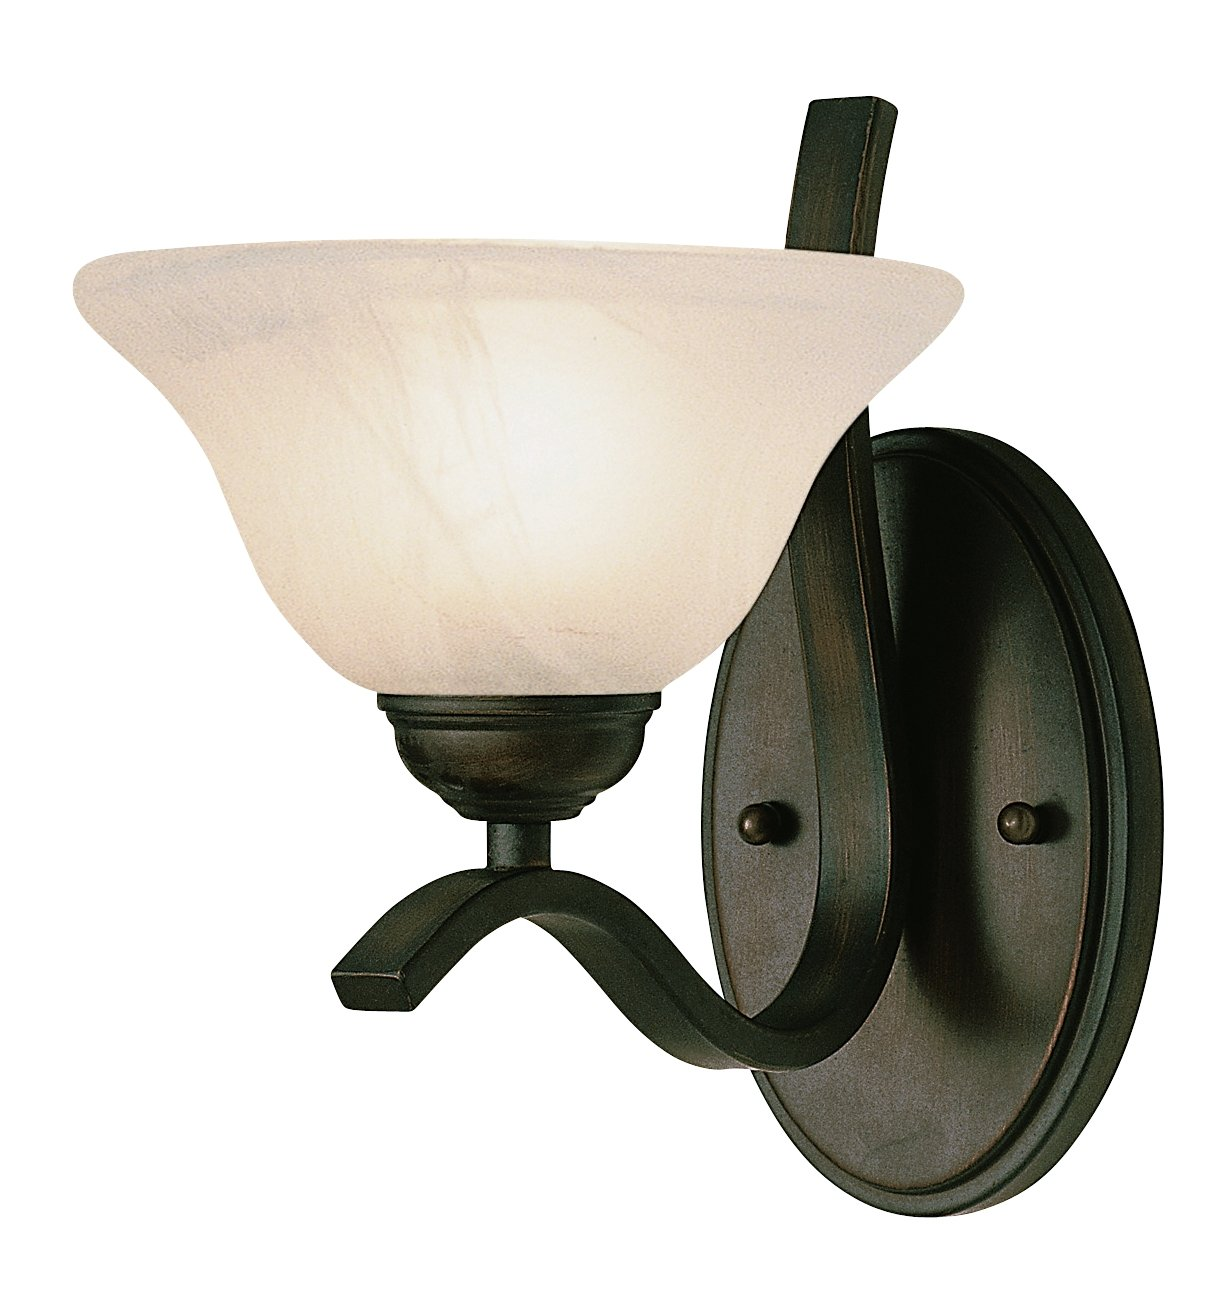 Trans Globe Lighting 2825 ROB Indoor  Hollyslope 7.5'' Wall Sconce, Rubbed Oil Bronze by Trans Glob Lighting (Image #1)